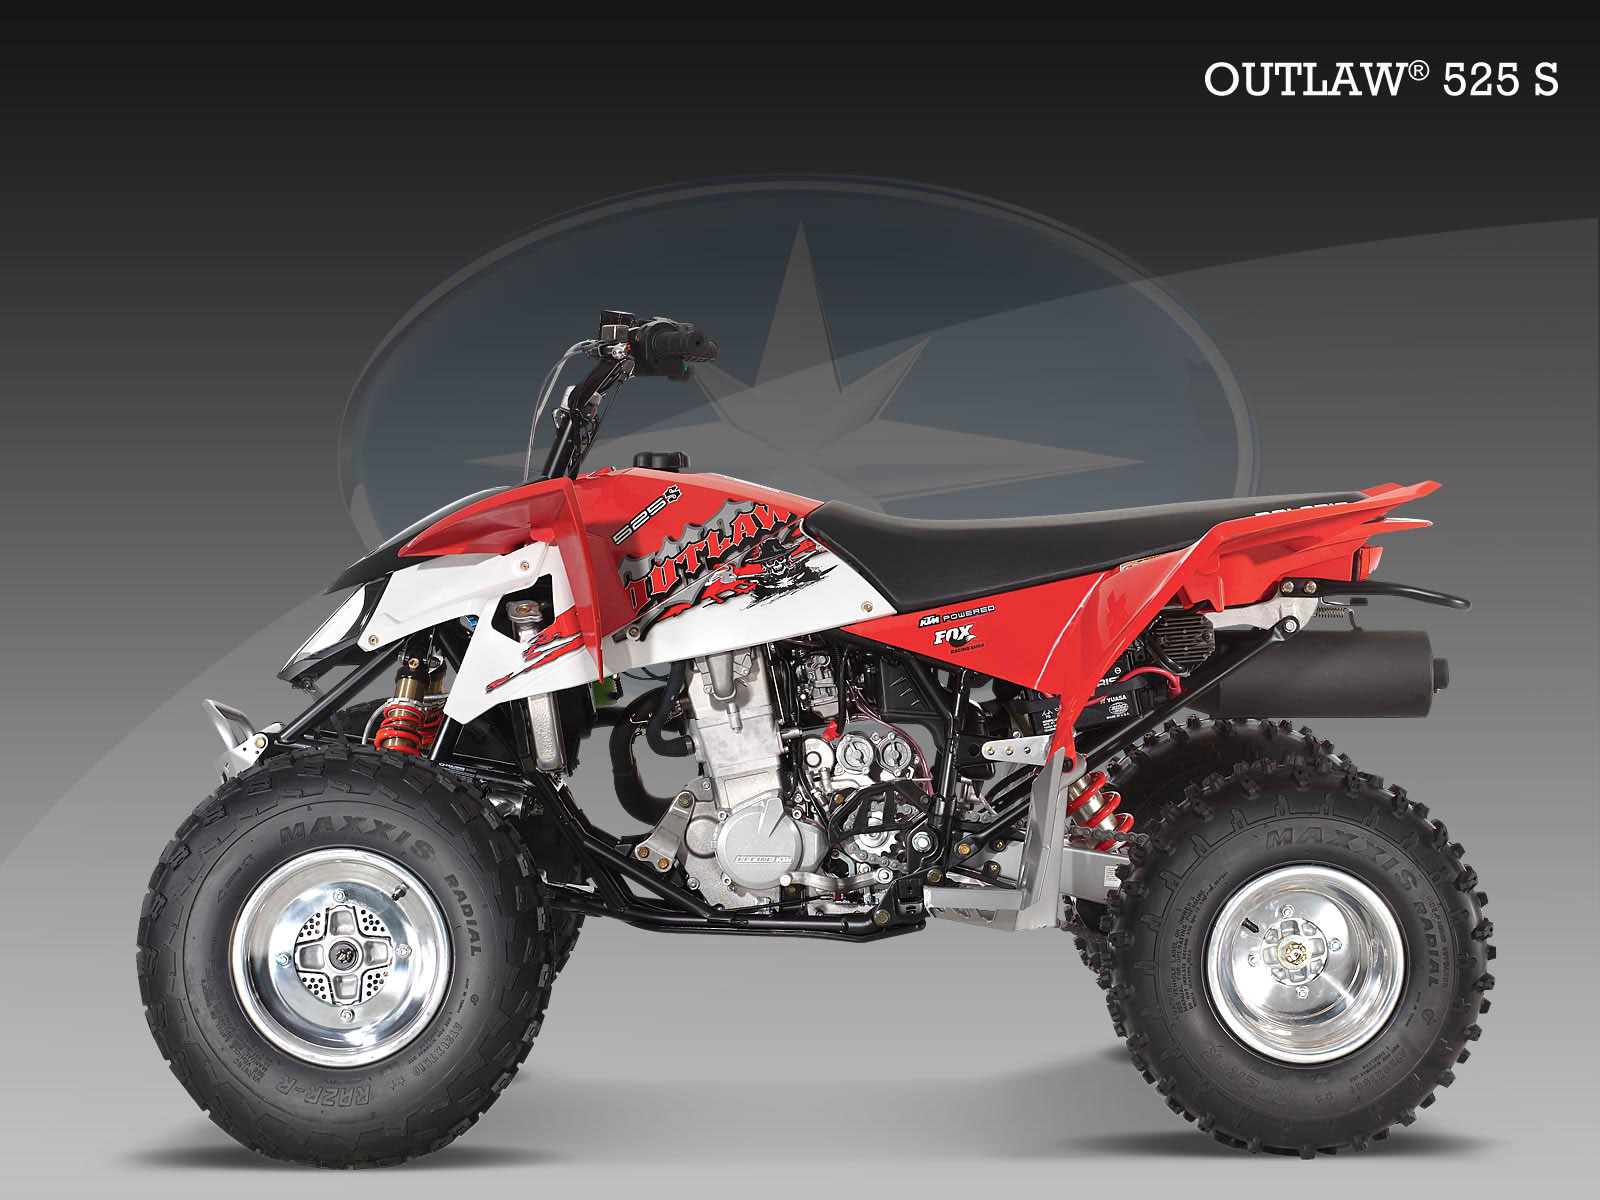 polaris outlaw 525 s specs 2009 2010 autoevolution. Black Bedroom Furniture Sets. Home Design Ideas